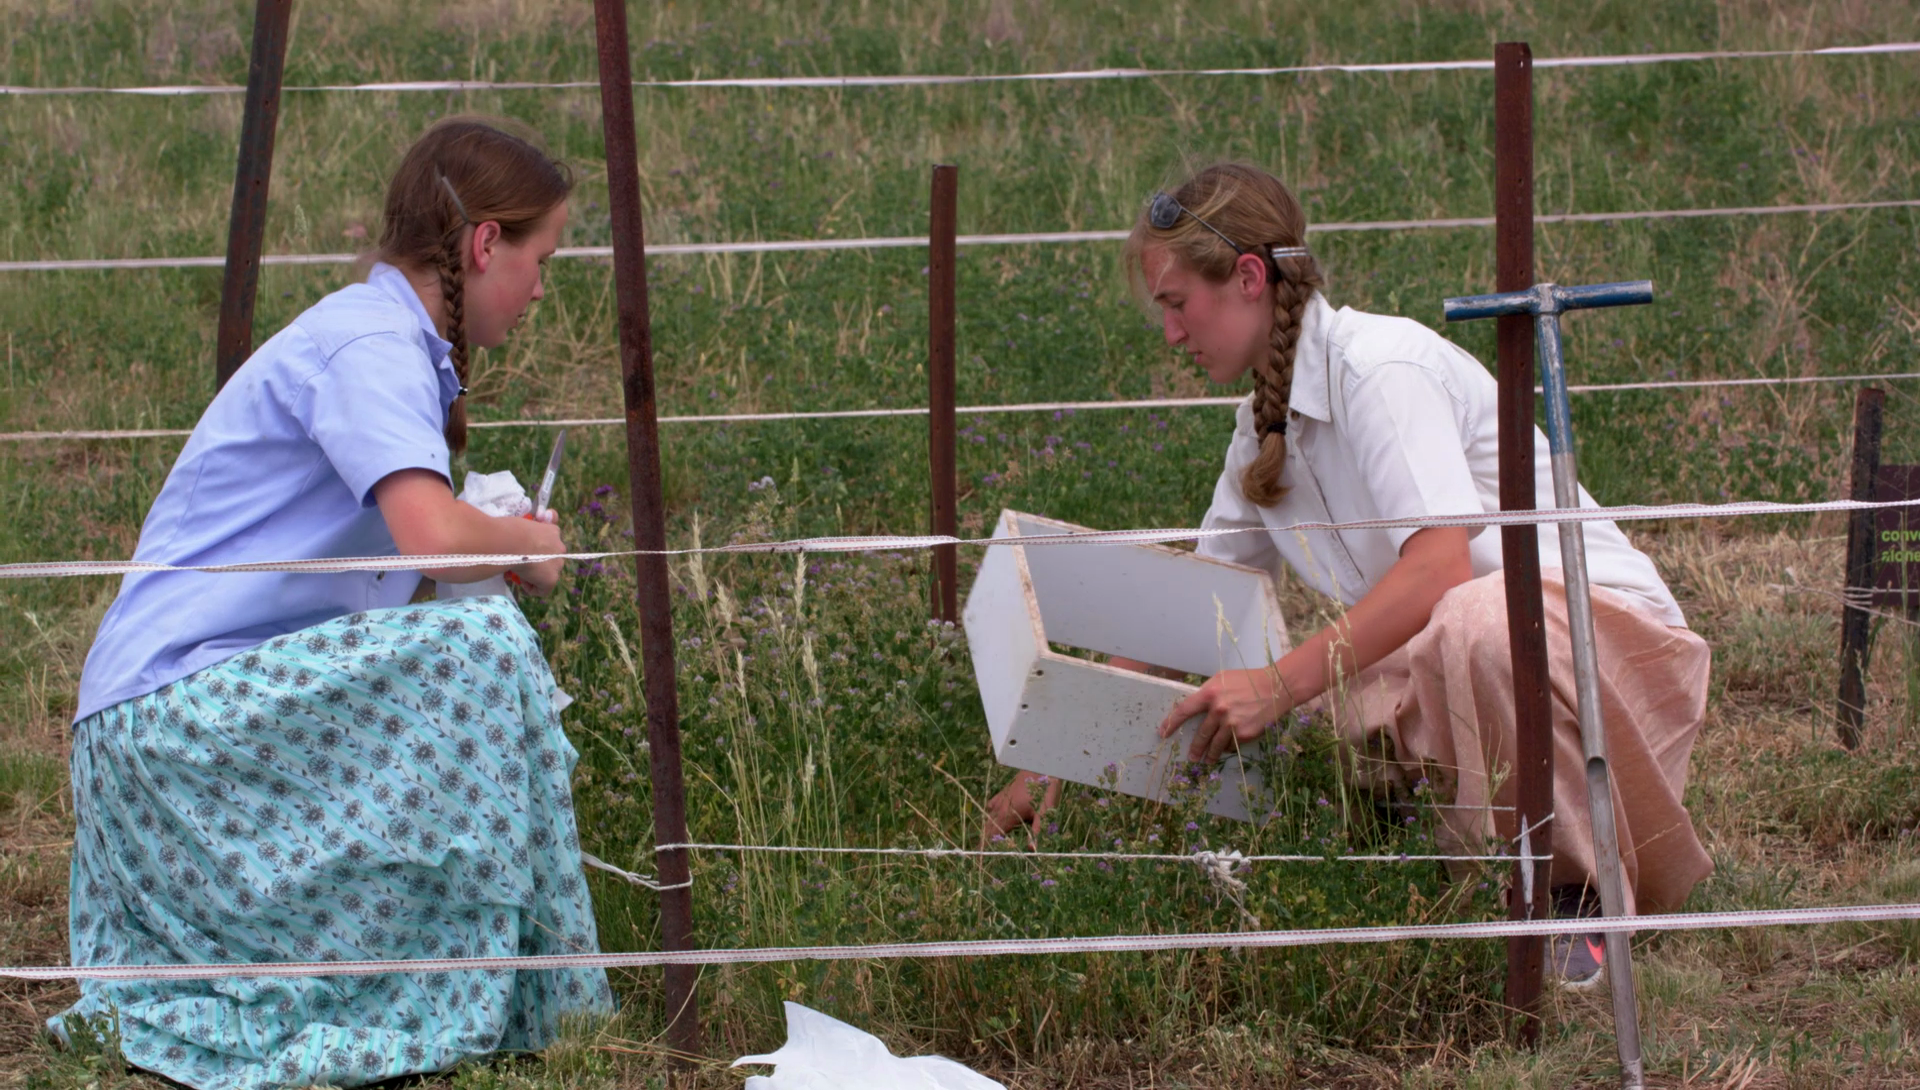 Tiarra Meier and Anne Zimmerman working in the field on a property in Elsmore, NSW.